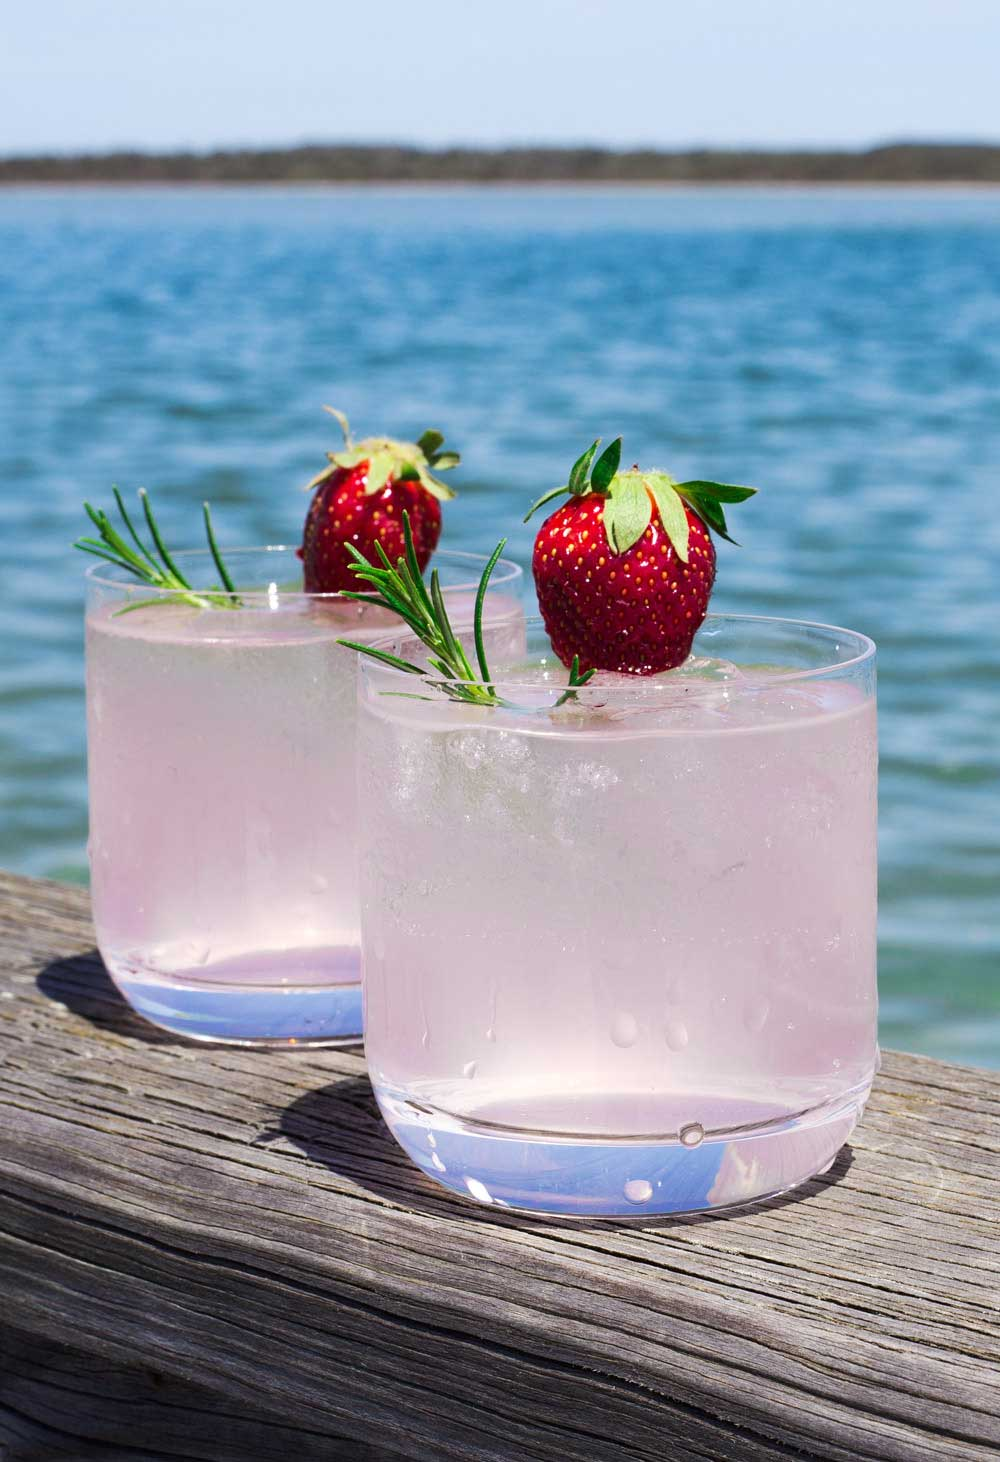 Strawberry sweetened gin, mixed with slightly sparkling moscato and a hint of rosemary. This Strawberry and Rosemary Gin Fizz was made for Friday afternoons sat in the garden, watching the sun set. Add in a bit of finger food and you have the perfect start to the weekend.